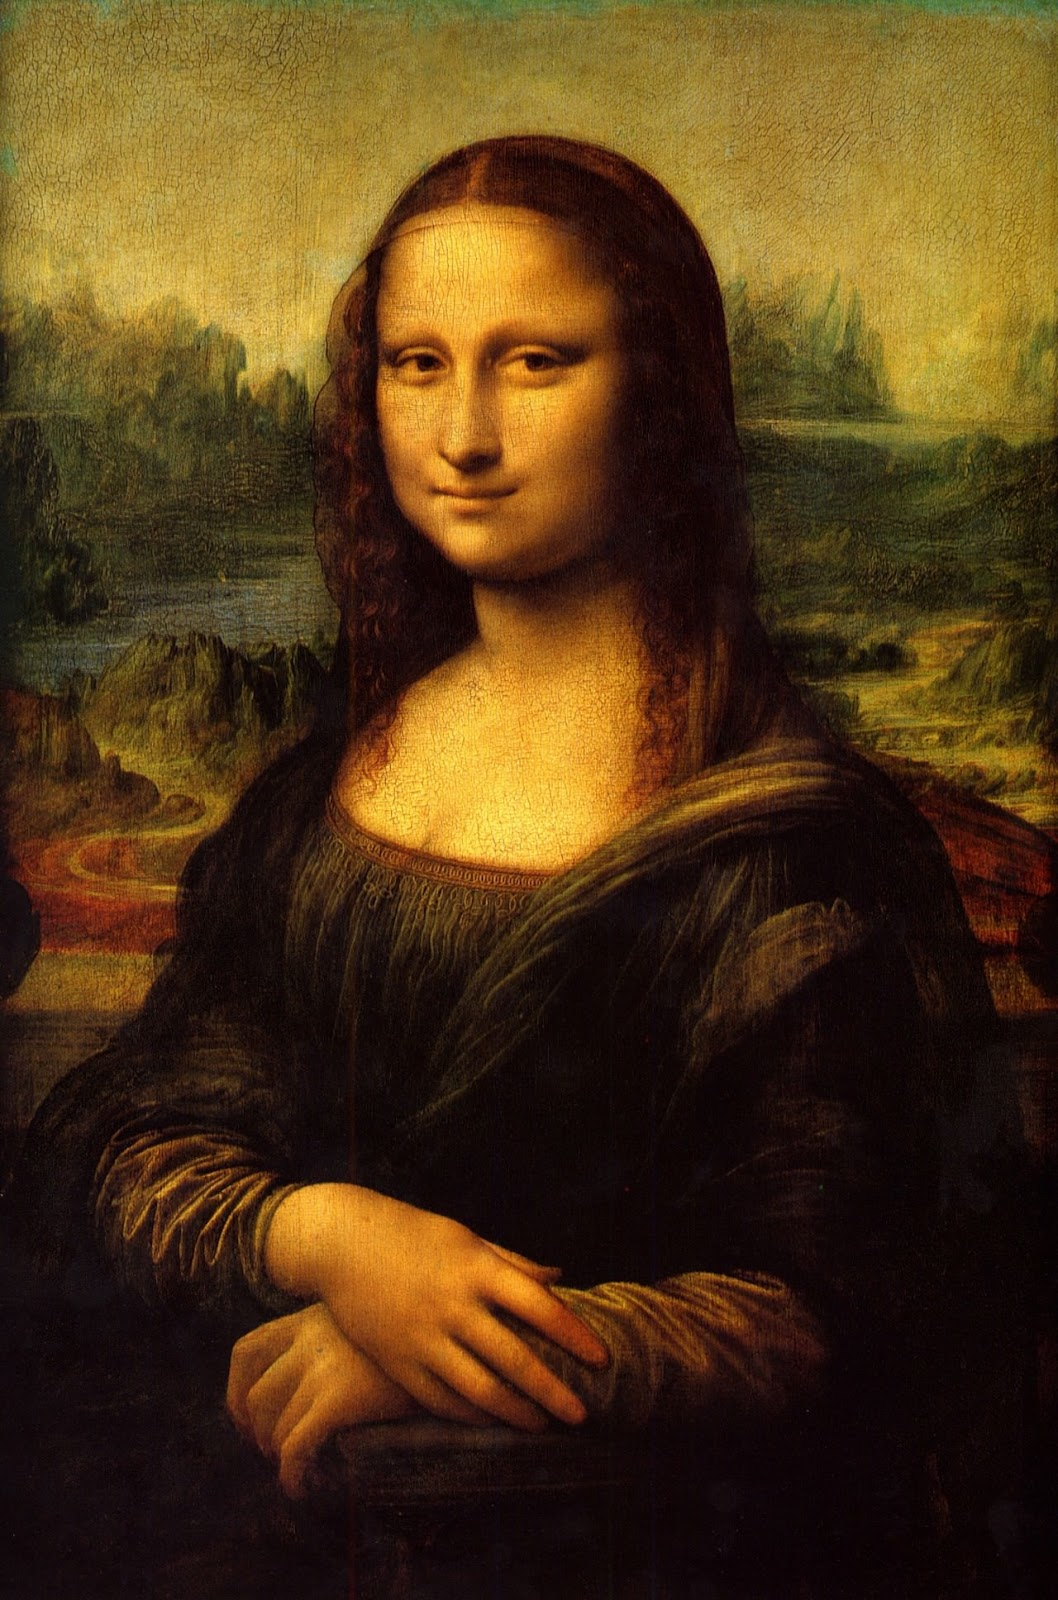 The Mona Lisa - by Leonardo Da Vinci